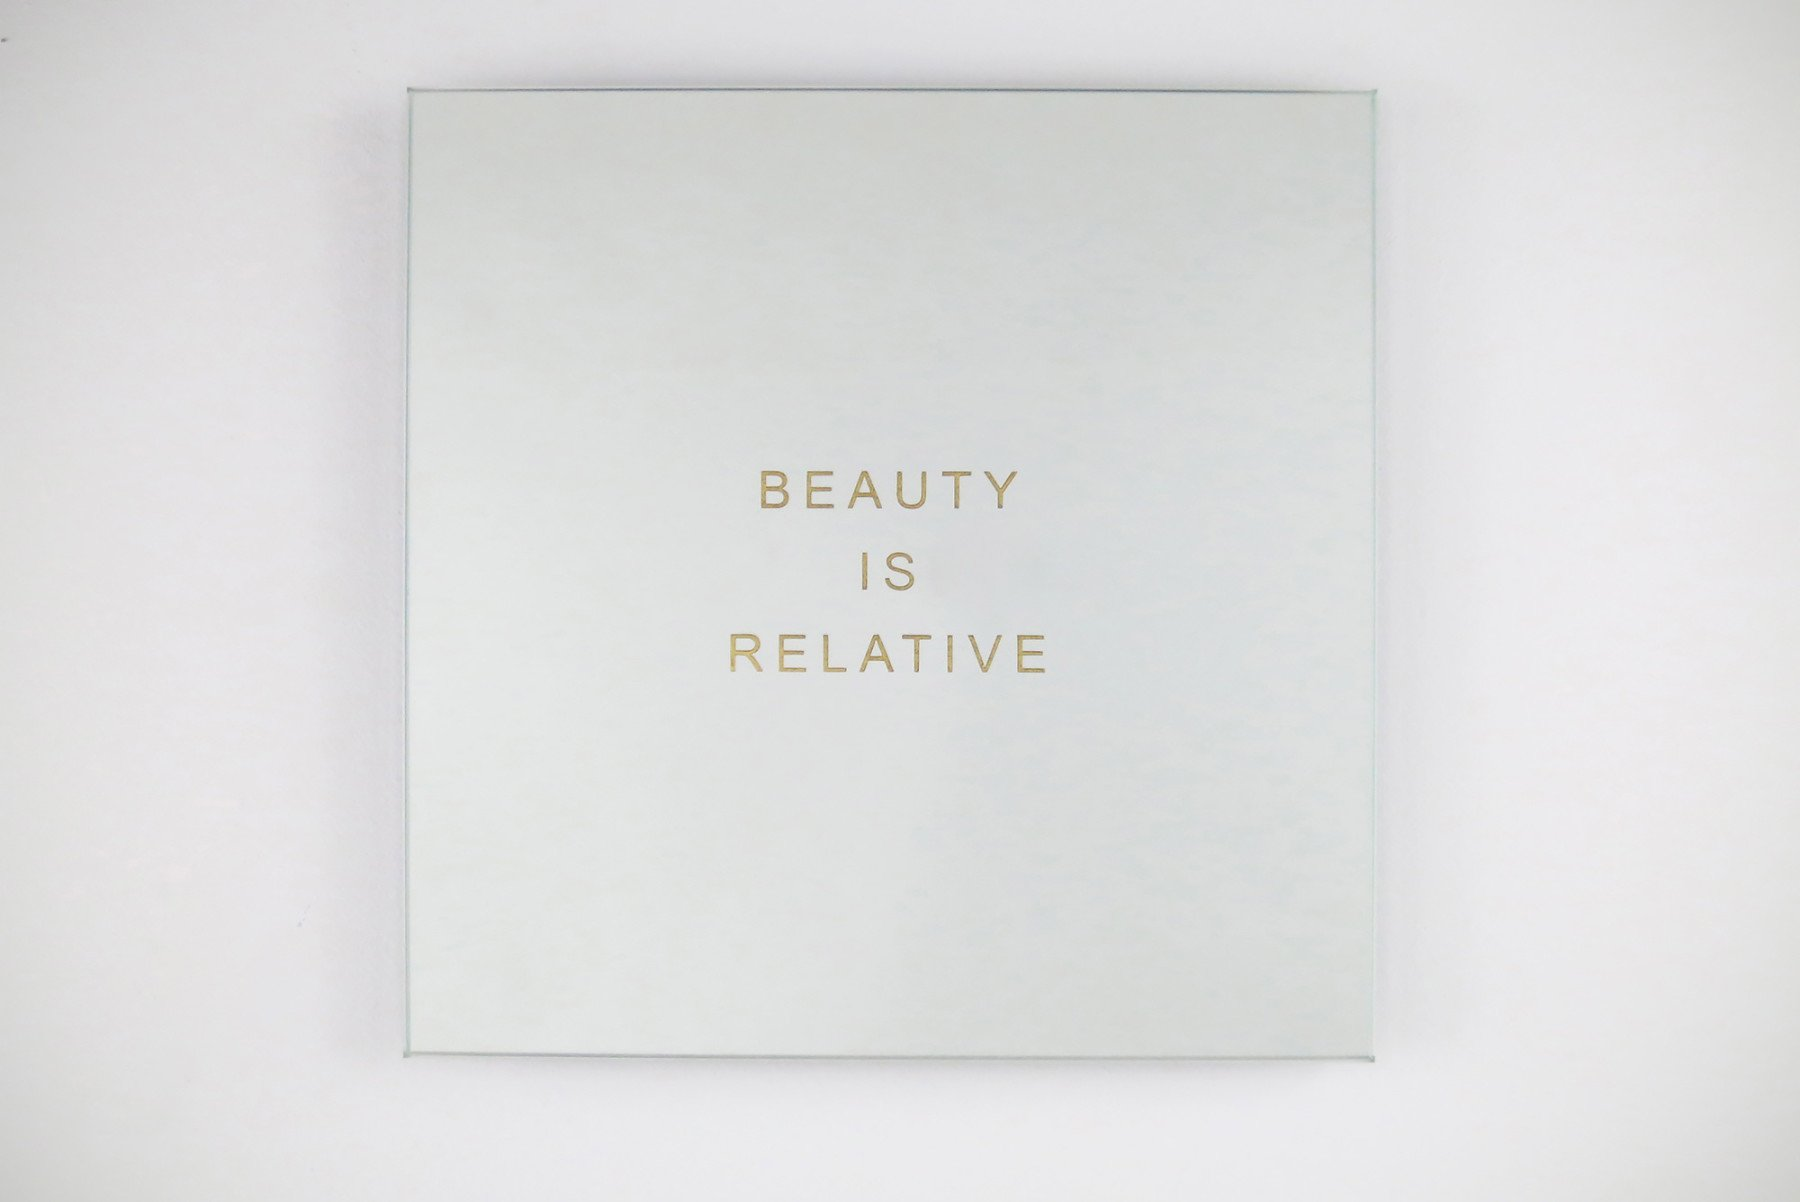 Beauty is relative - mirror